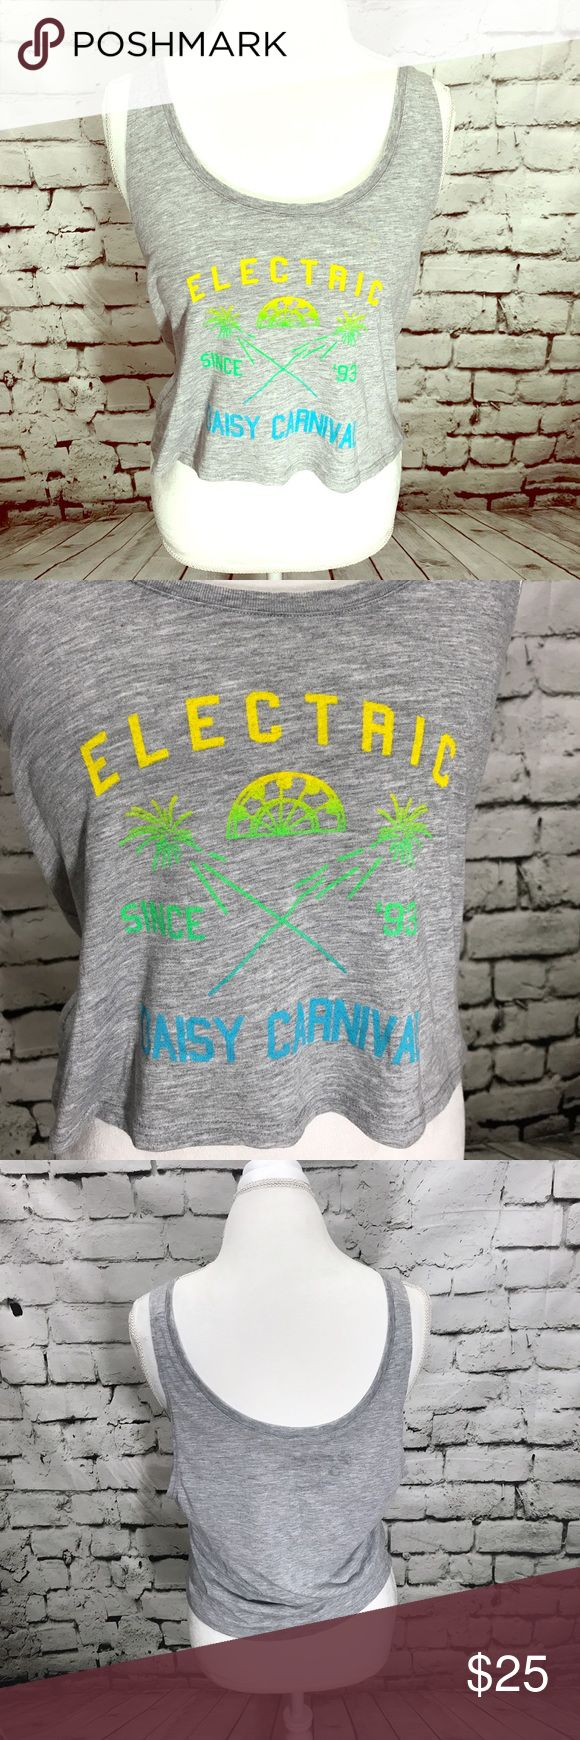 Electric Daisy Carnival Crop Top Electric Daisy Carnival Official Merchandise Crop Top. Gray with screen print yellow, blue, and green. Designed and printed in California. 100% cotton Electric Daisy Carnival Tops Crop Tops